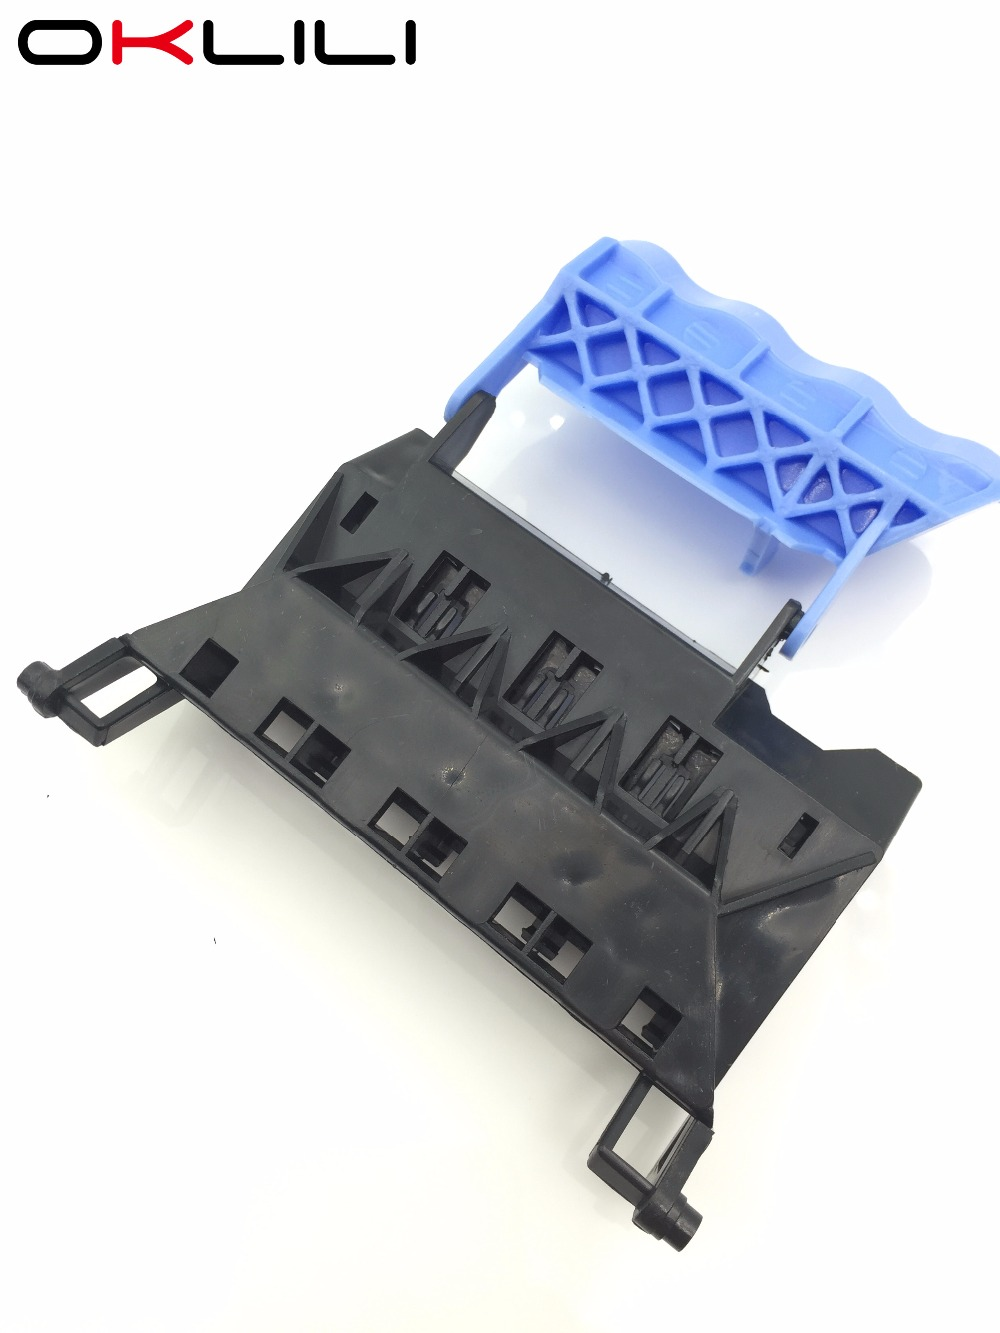 C7769-69376 Print Head Carriage Assembly Carriage Cover For HP DesignJet 500 500ps 510 750c 800 800ps 820MFP 4500 5500 T1100 MFP